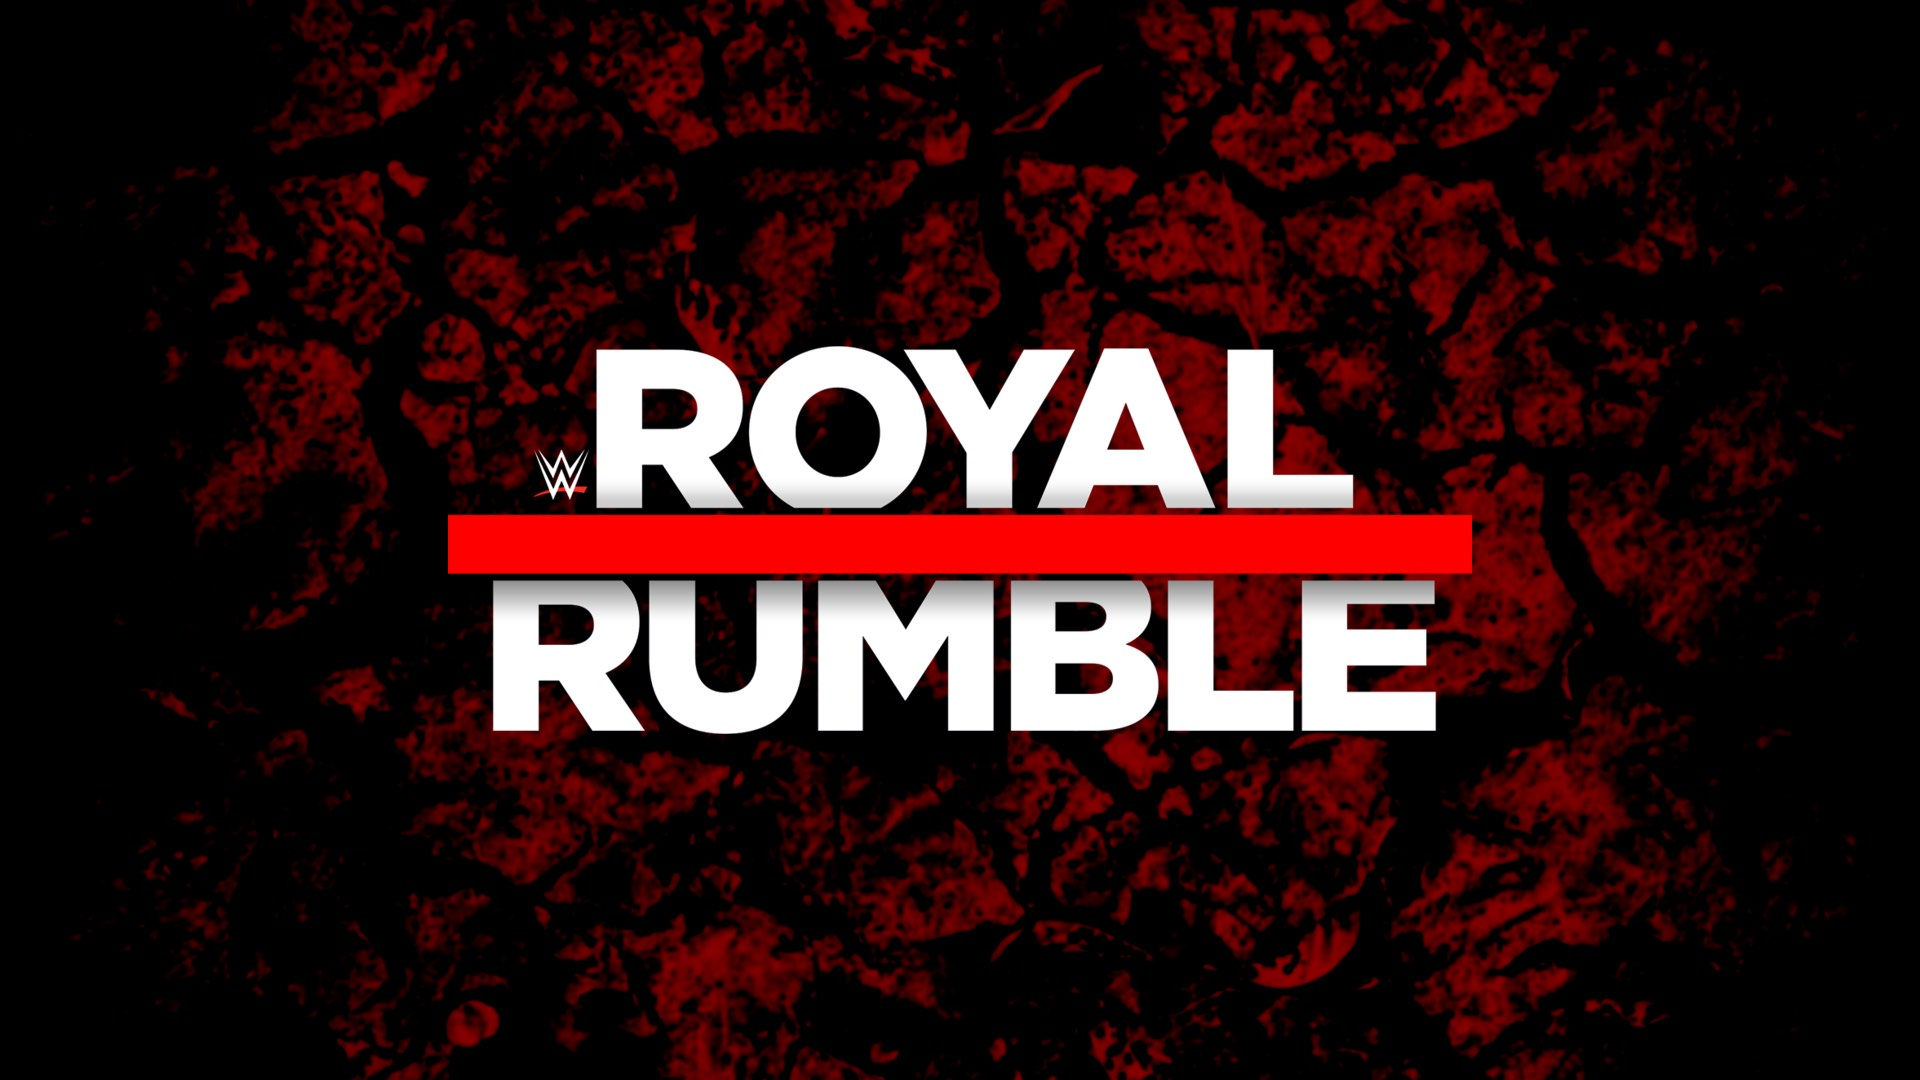 WWE Royal Rumble 2019 review: The value of listening to fans